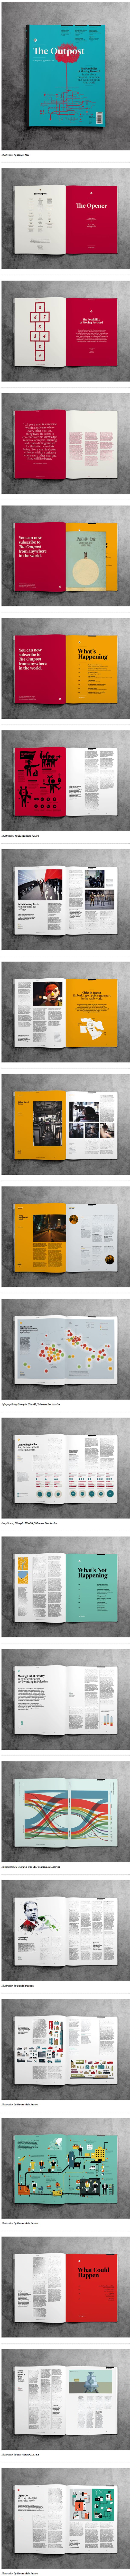 THE OUTPOST 01 on Behance